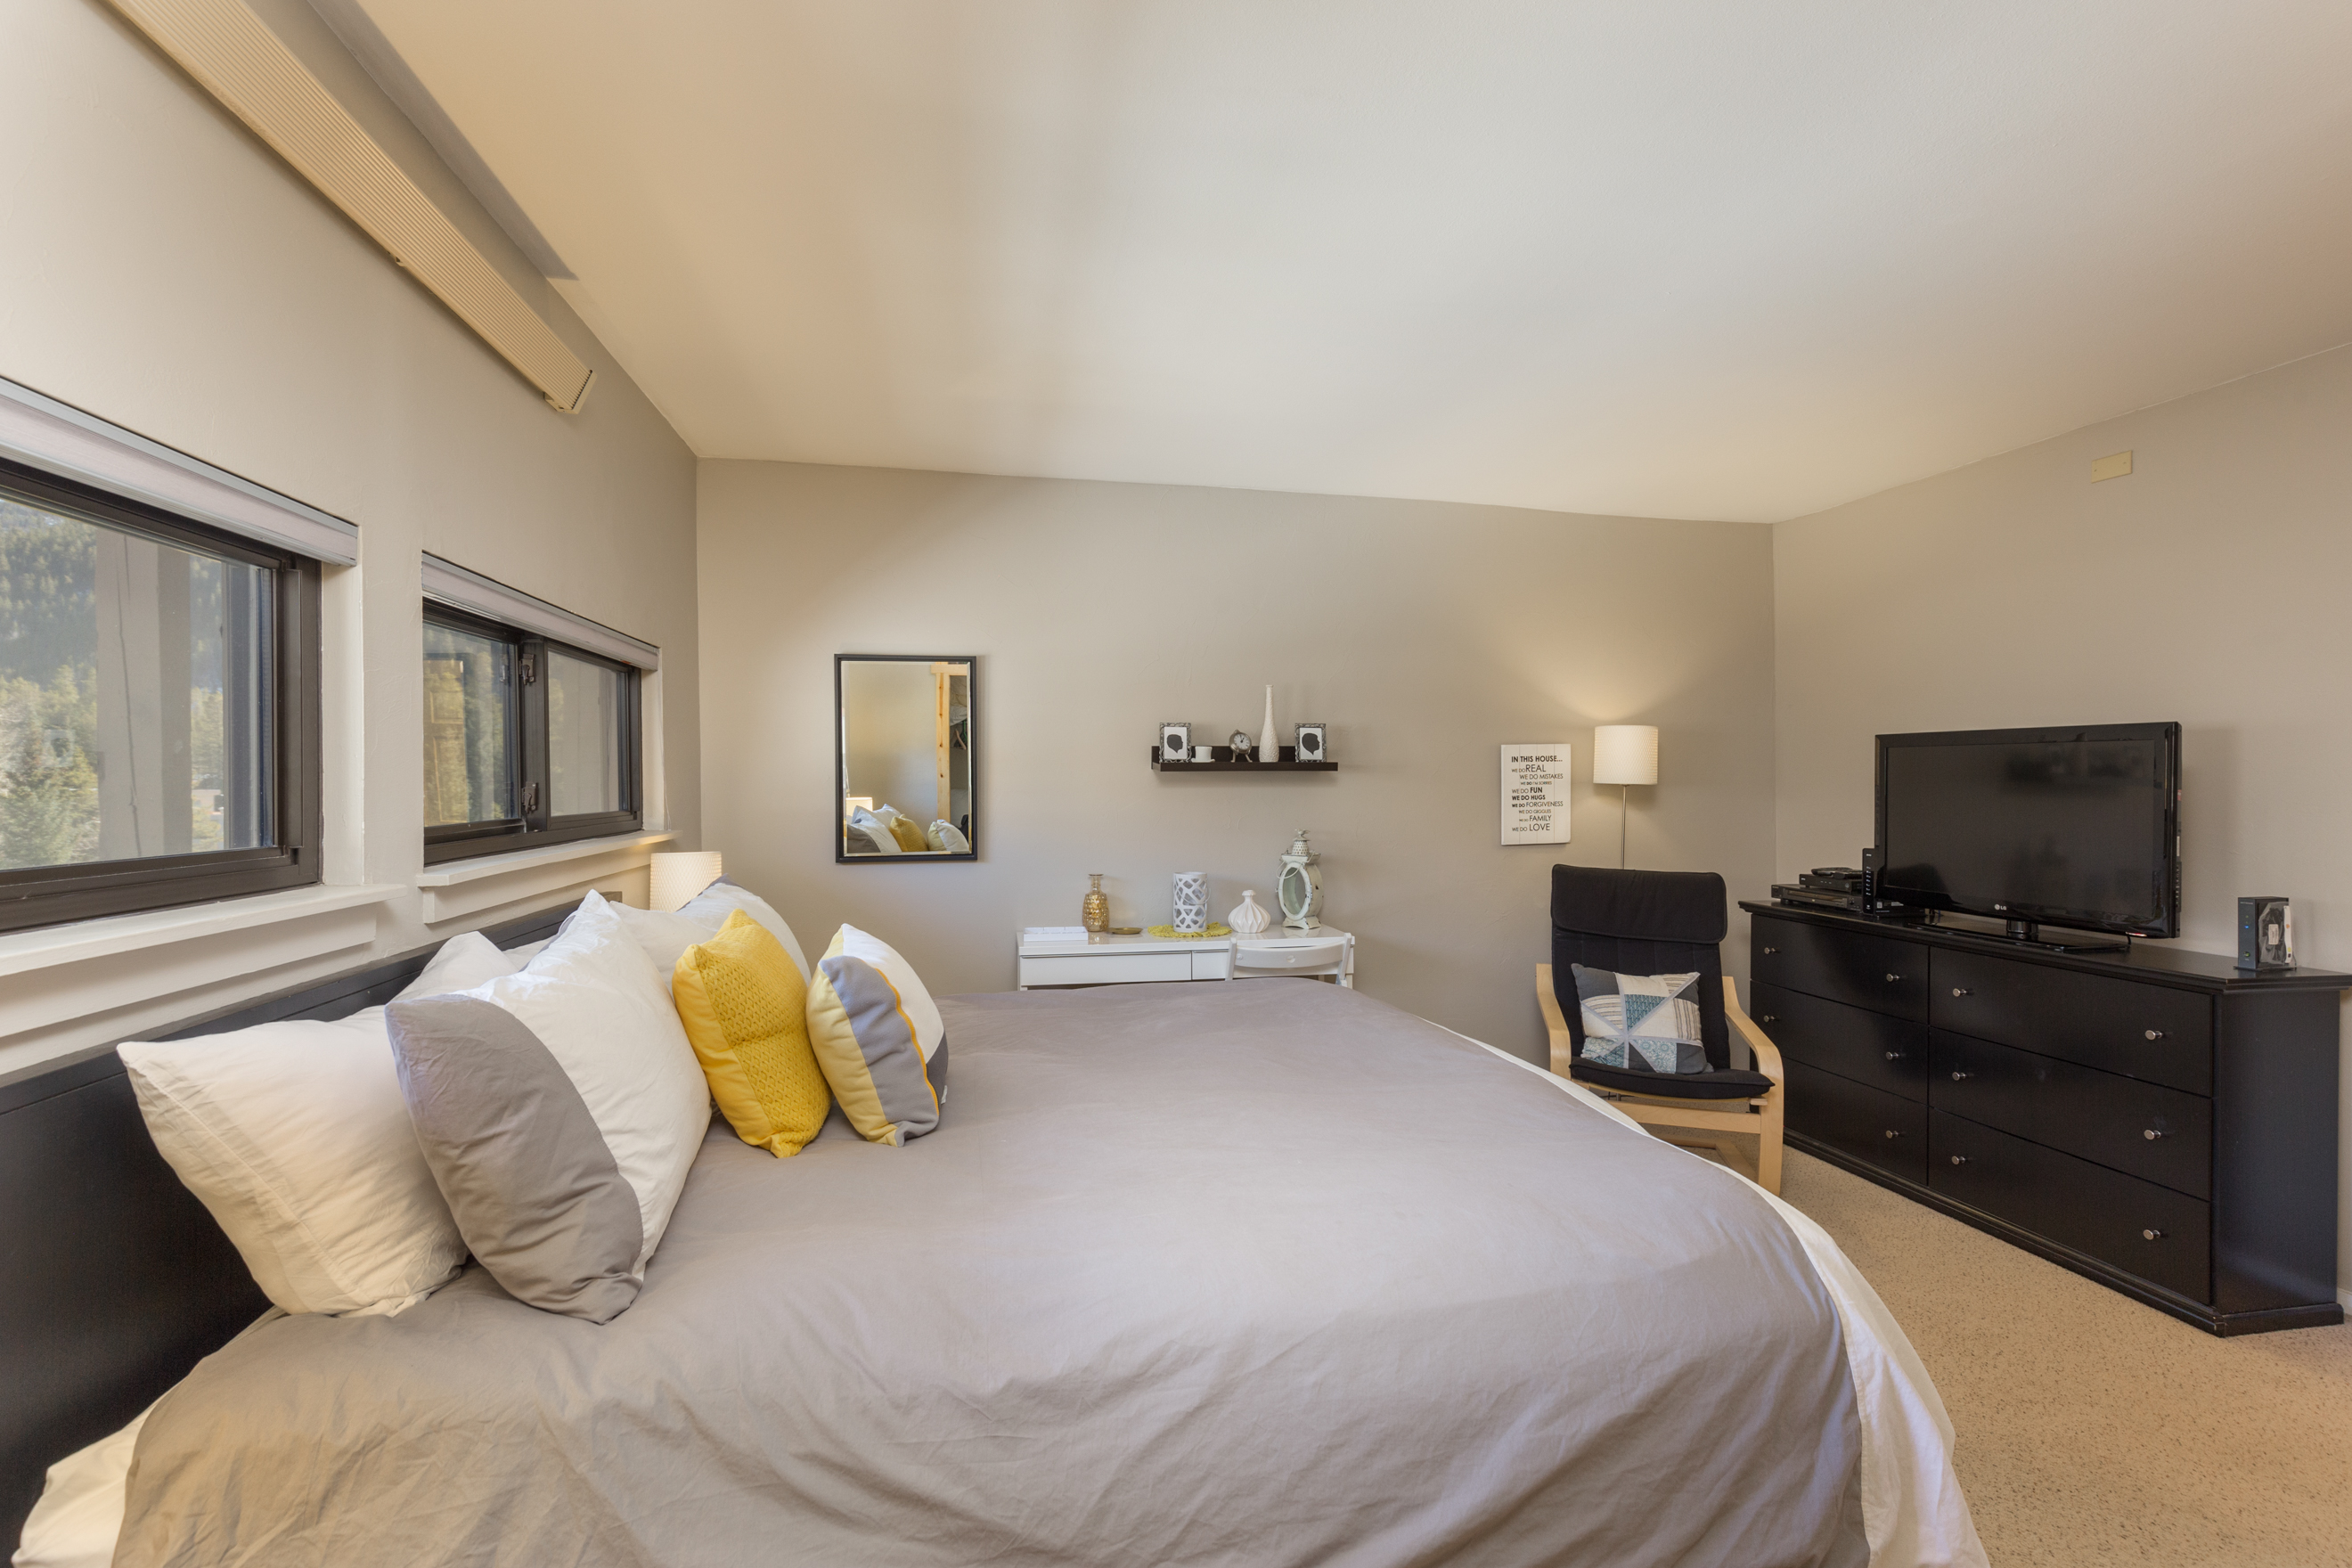 The first bedroom features a king-sized bed with Ivory White Bedding and a flat screen TV. (new photo coming soon)